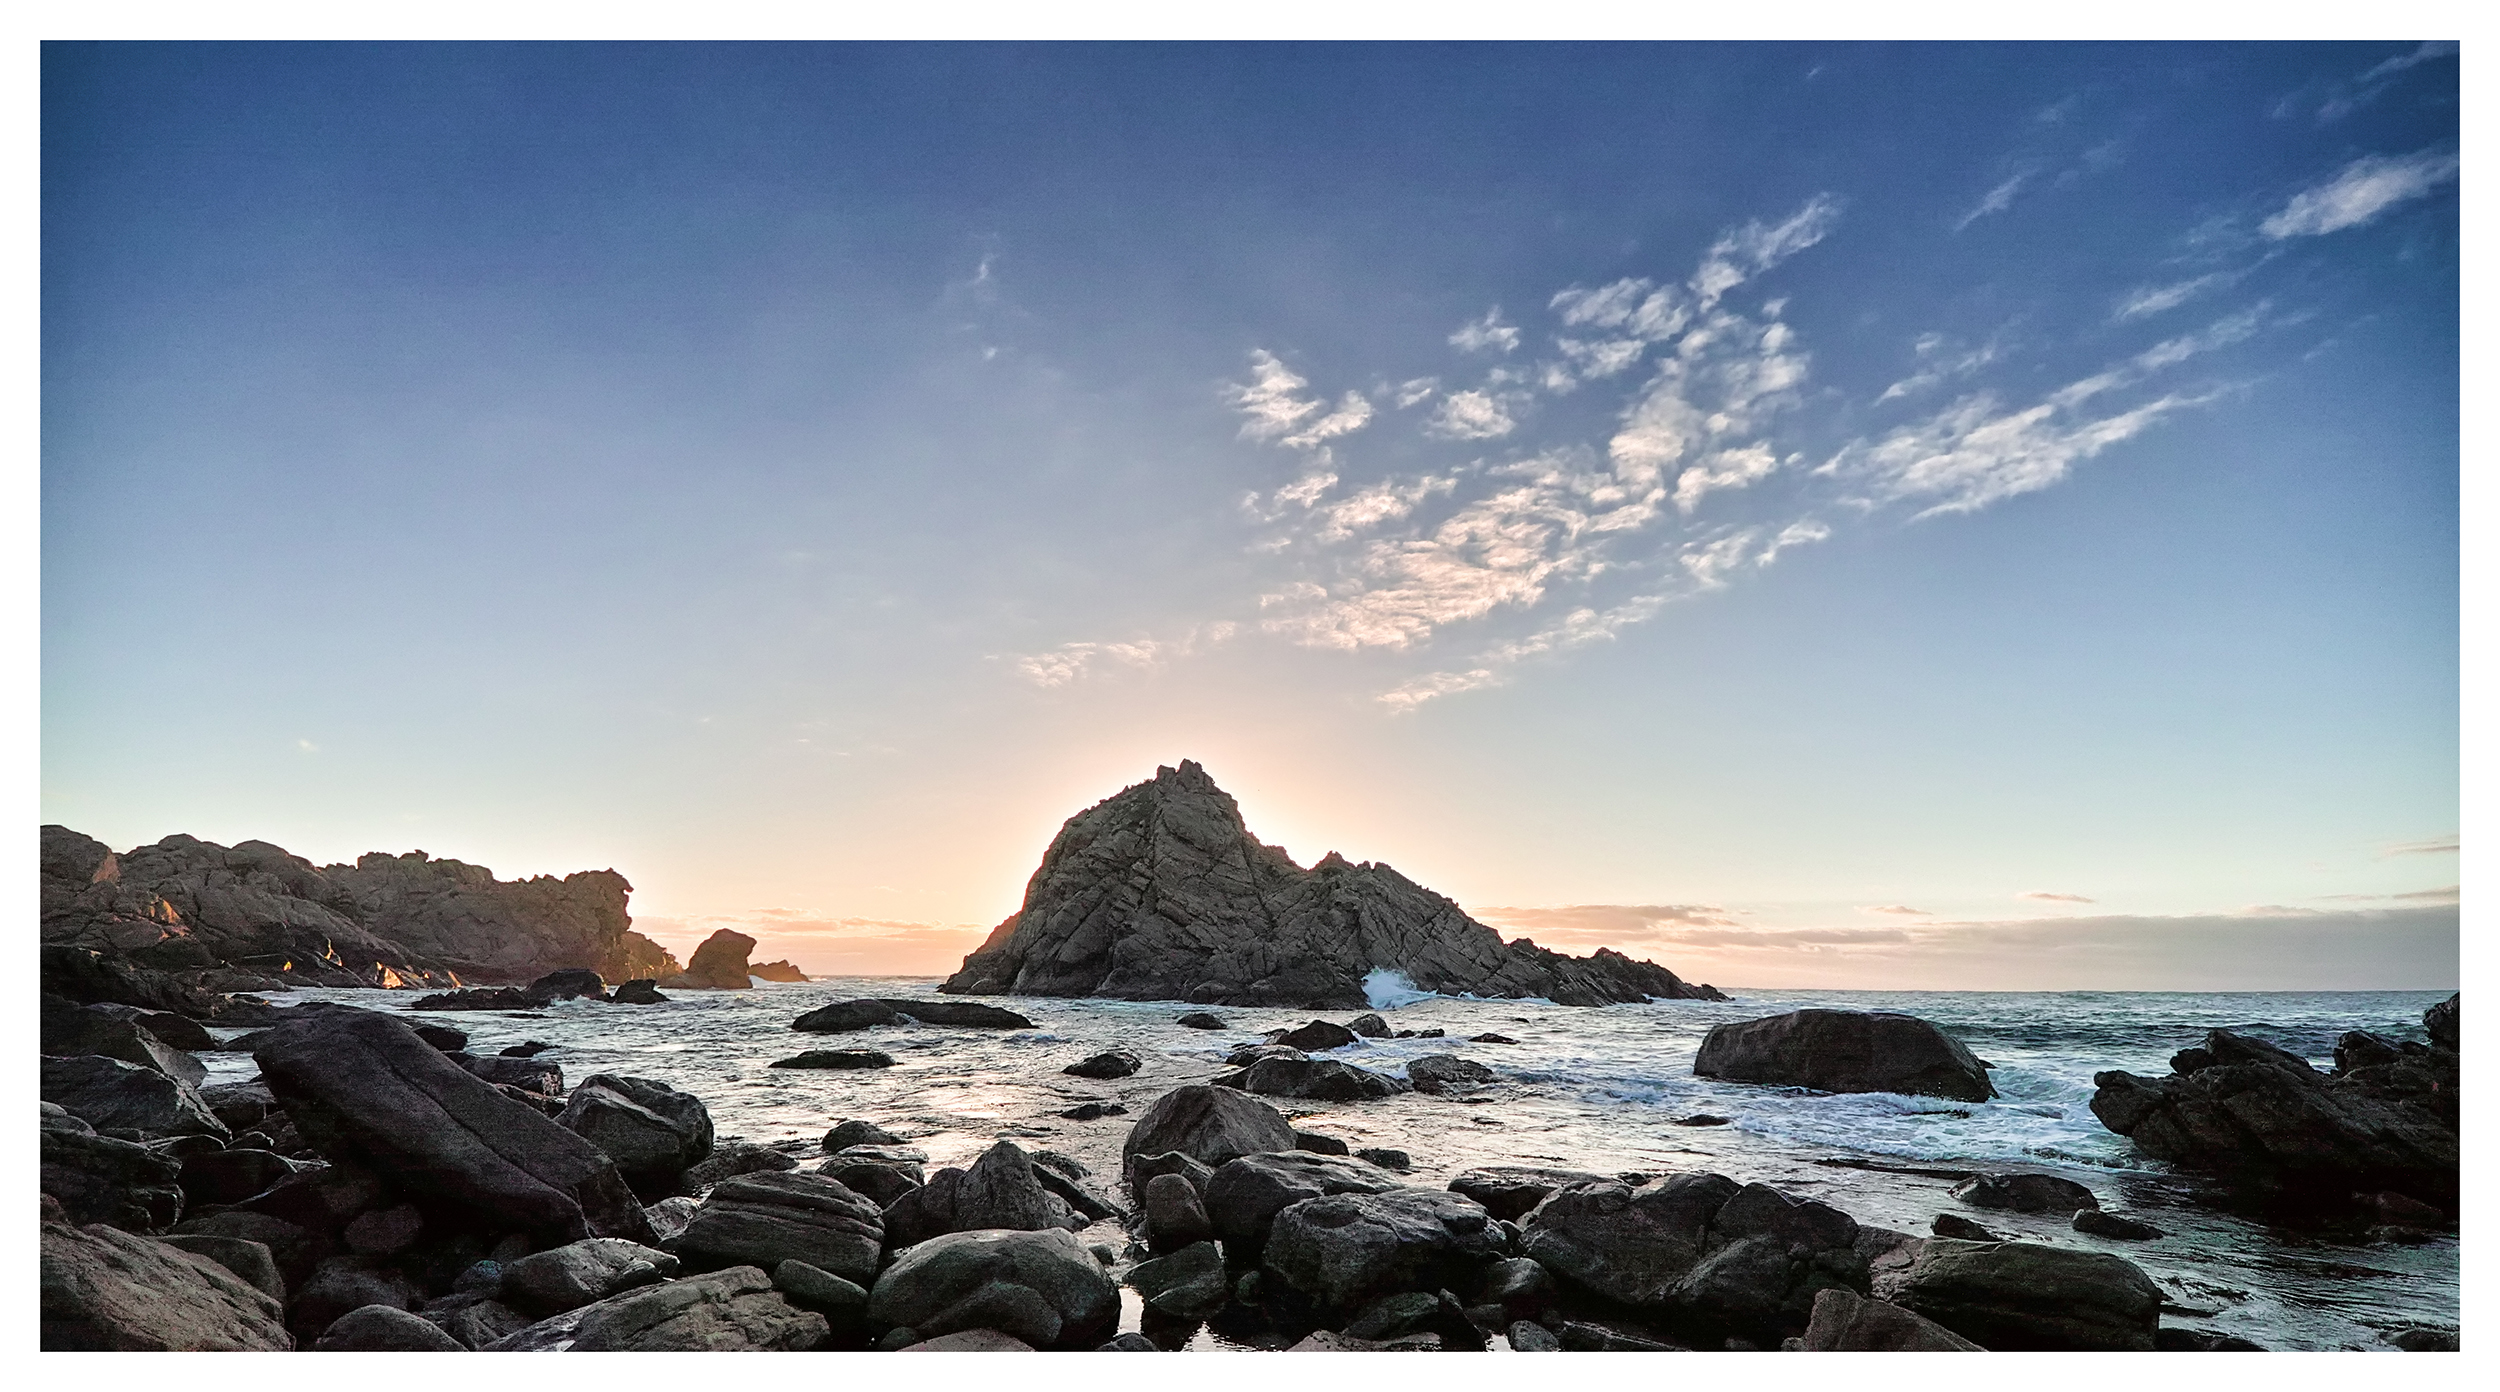 Sugar Loaf Rock 2